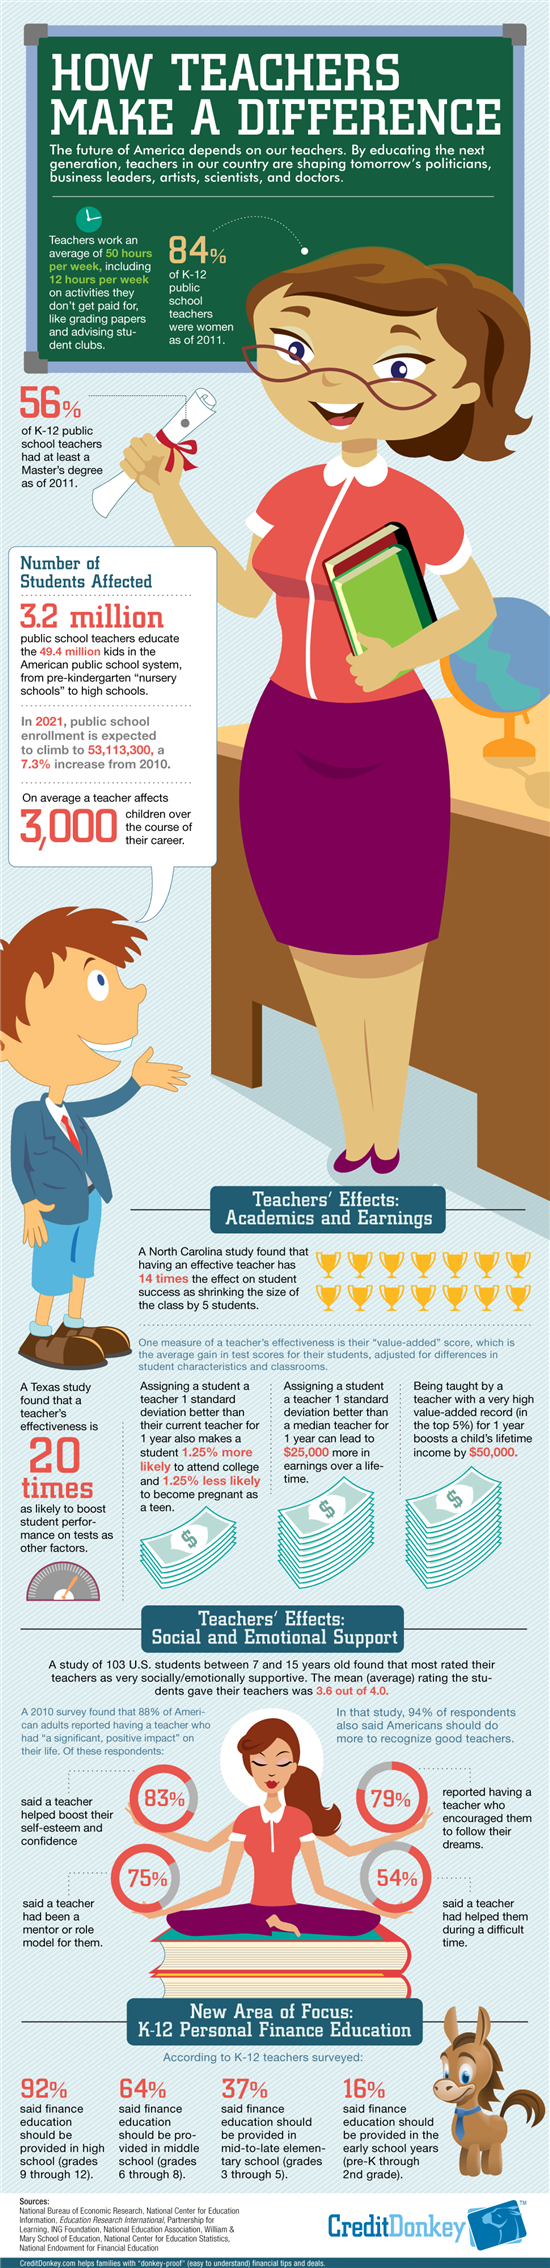 Infographic: How Teachers Make a Difference